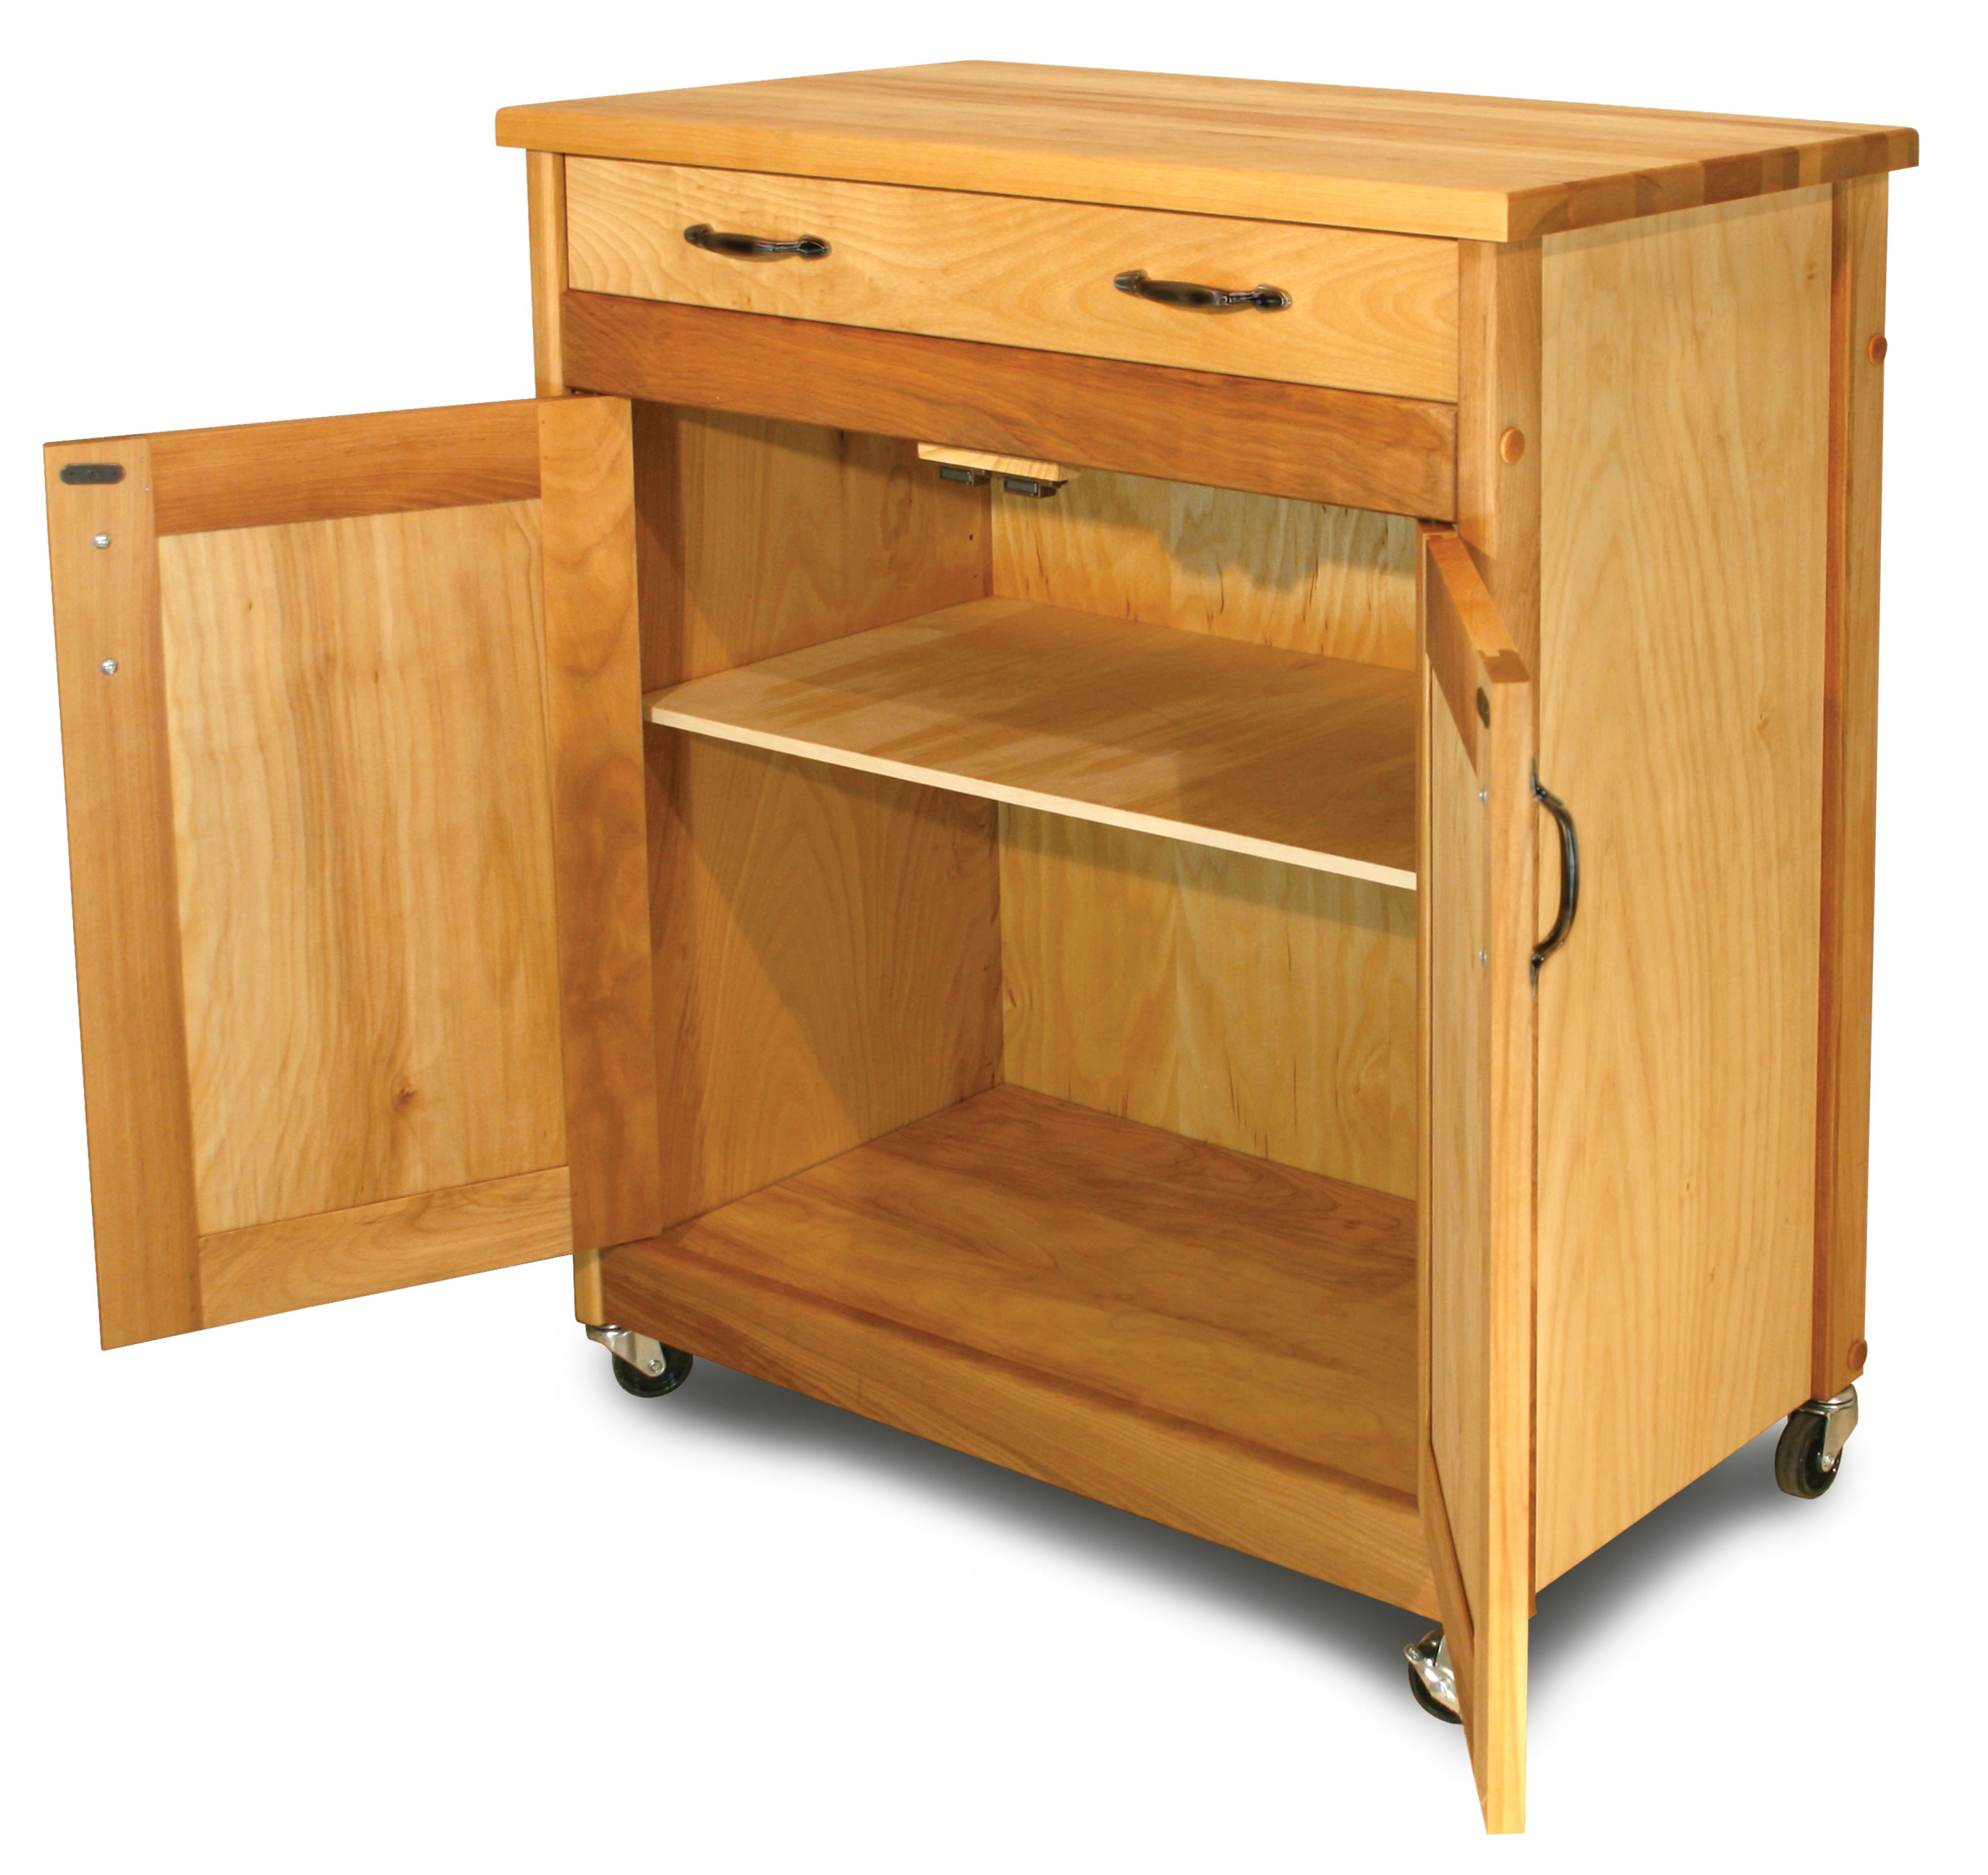 catskill designer island butcher block cart. Black Bedroom Furniture Sets. Home Design Ideas